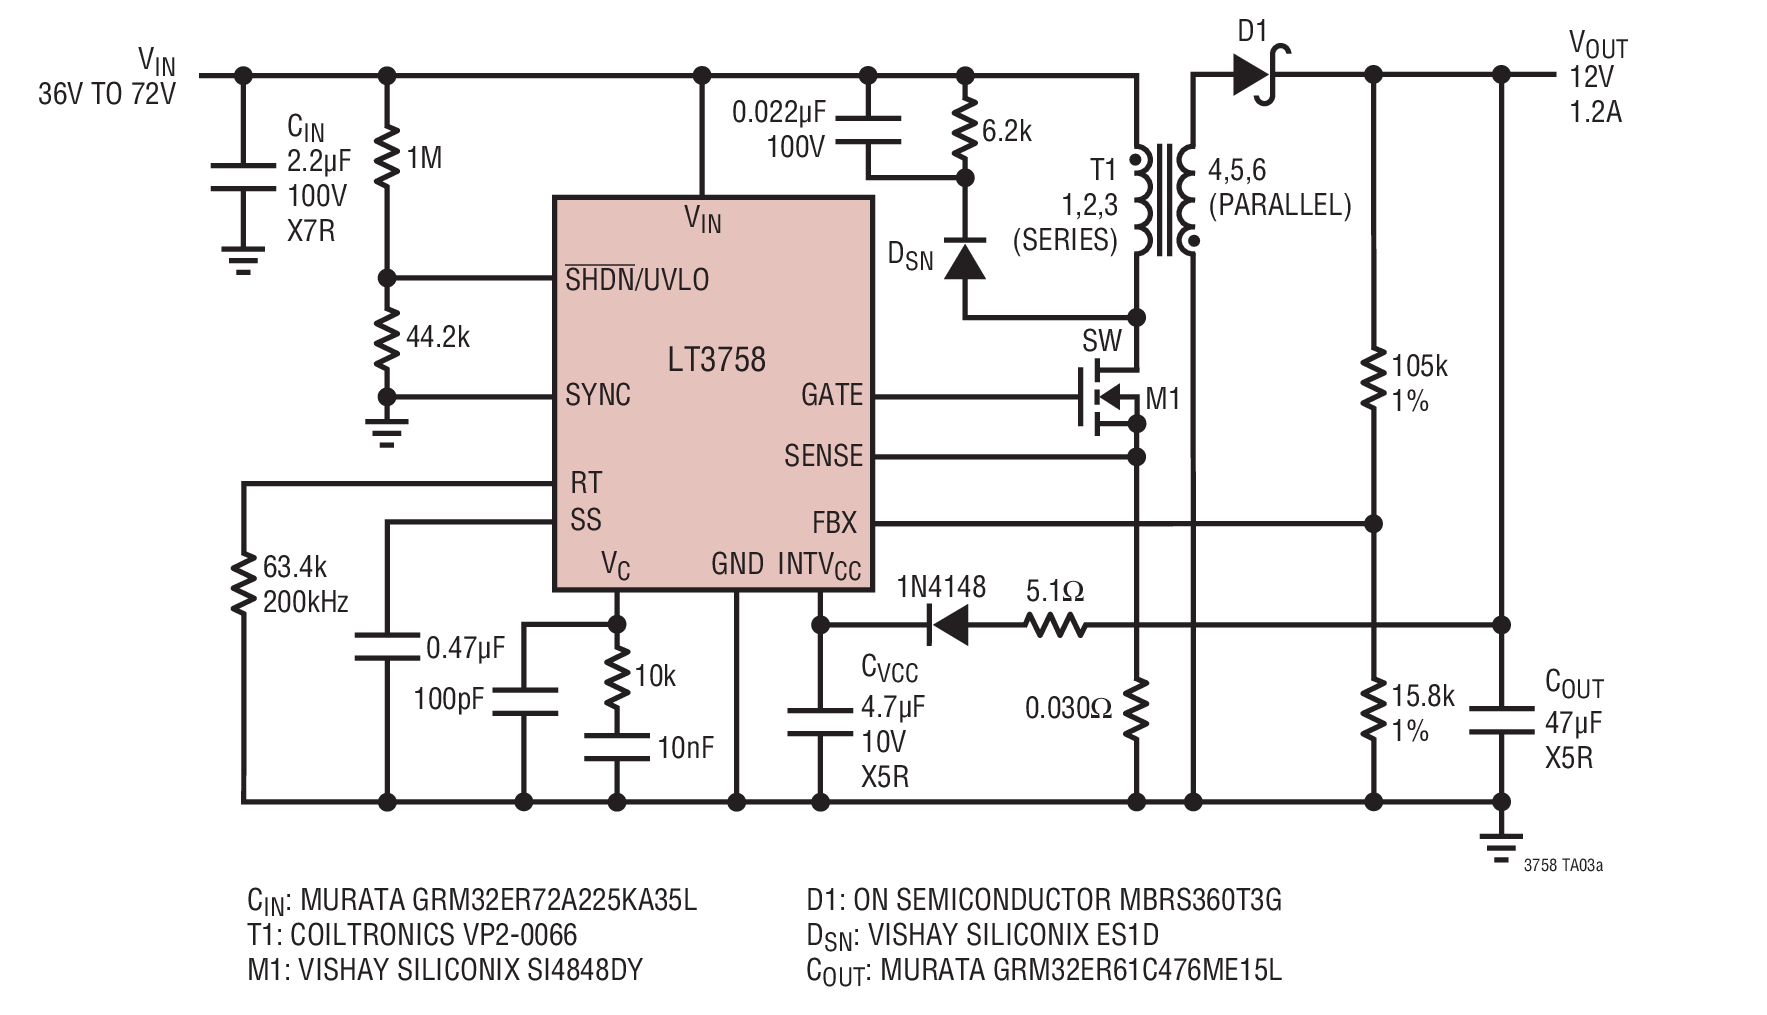 12v output nonisolated flyback power supply [ 1767 x 1015 Pixel ]